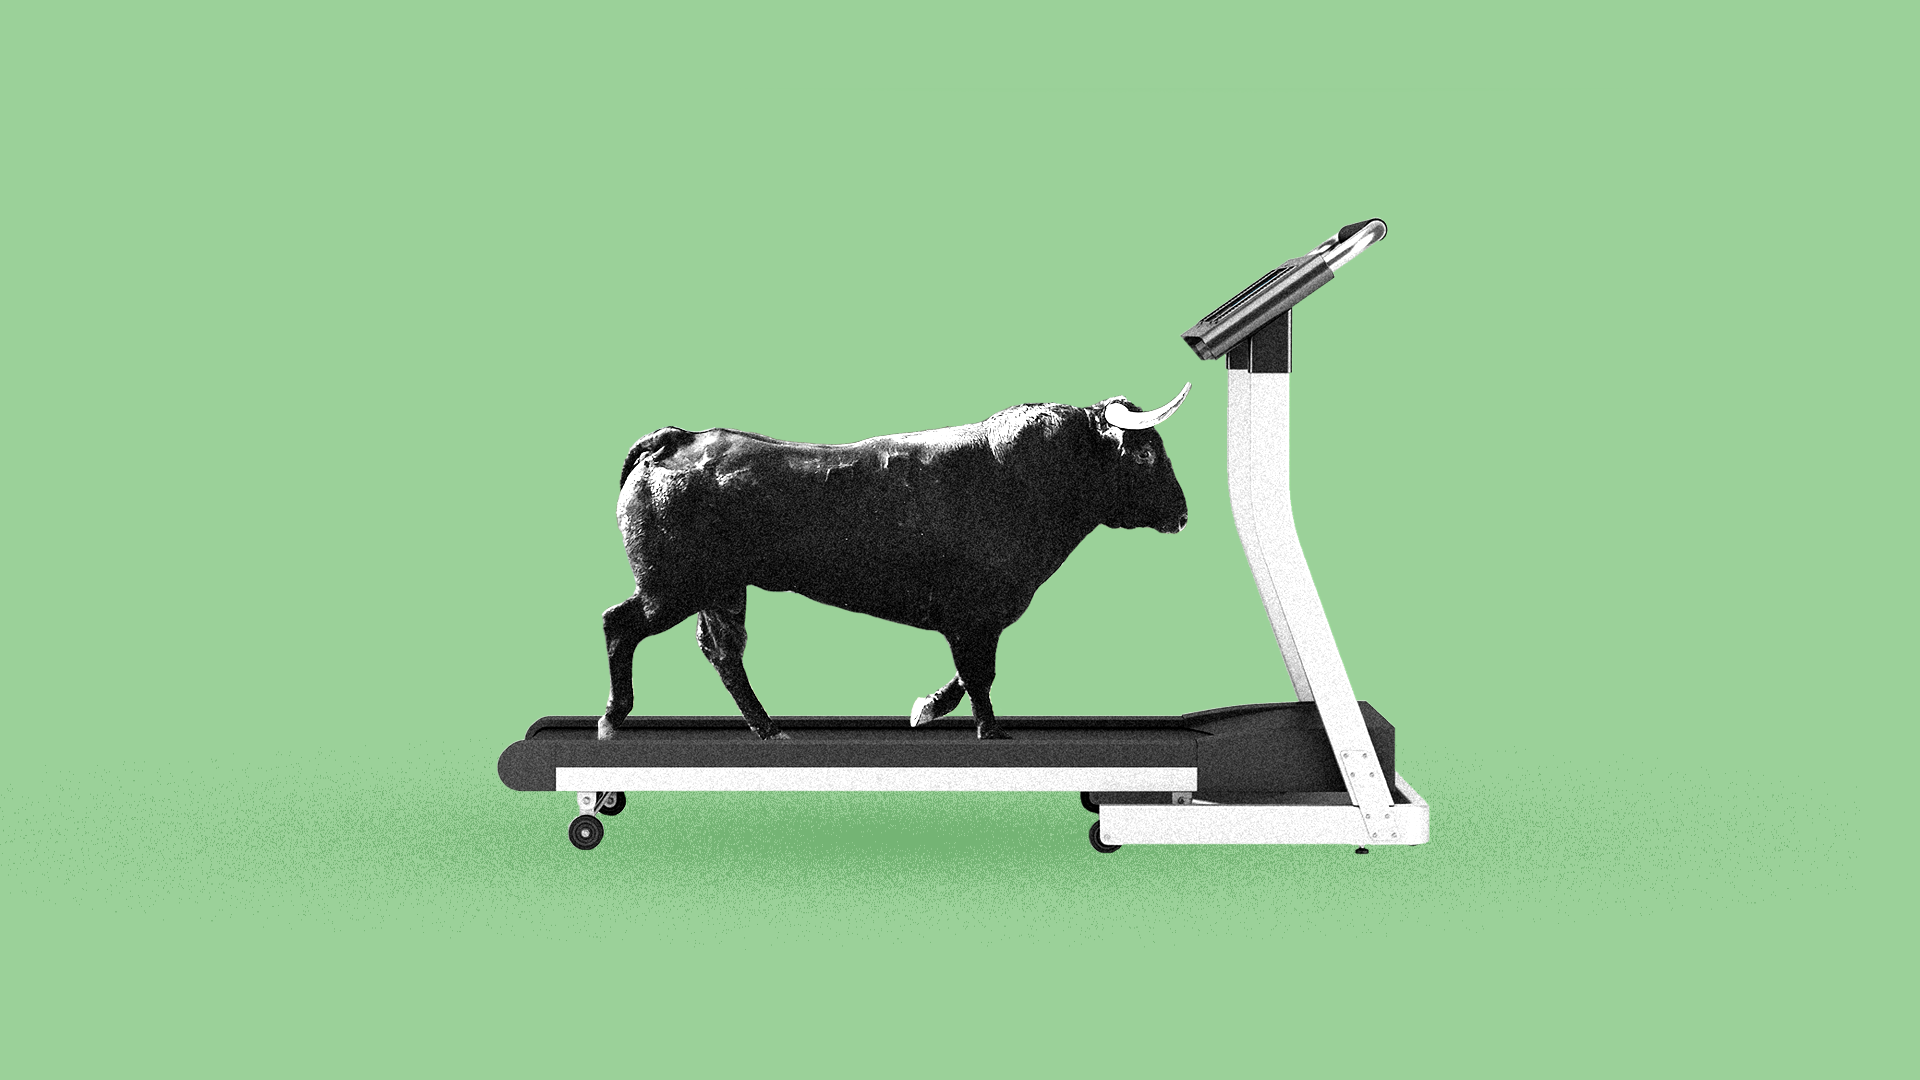 Illustration of a bull on a treadmill.